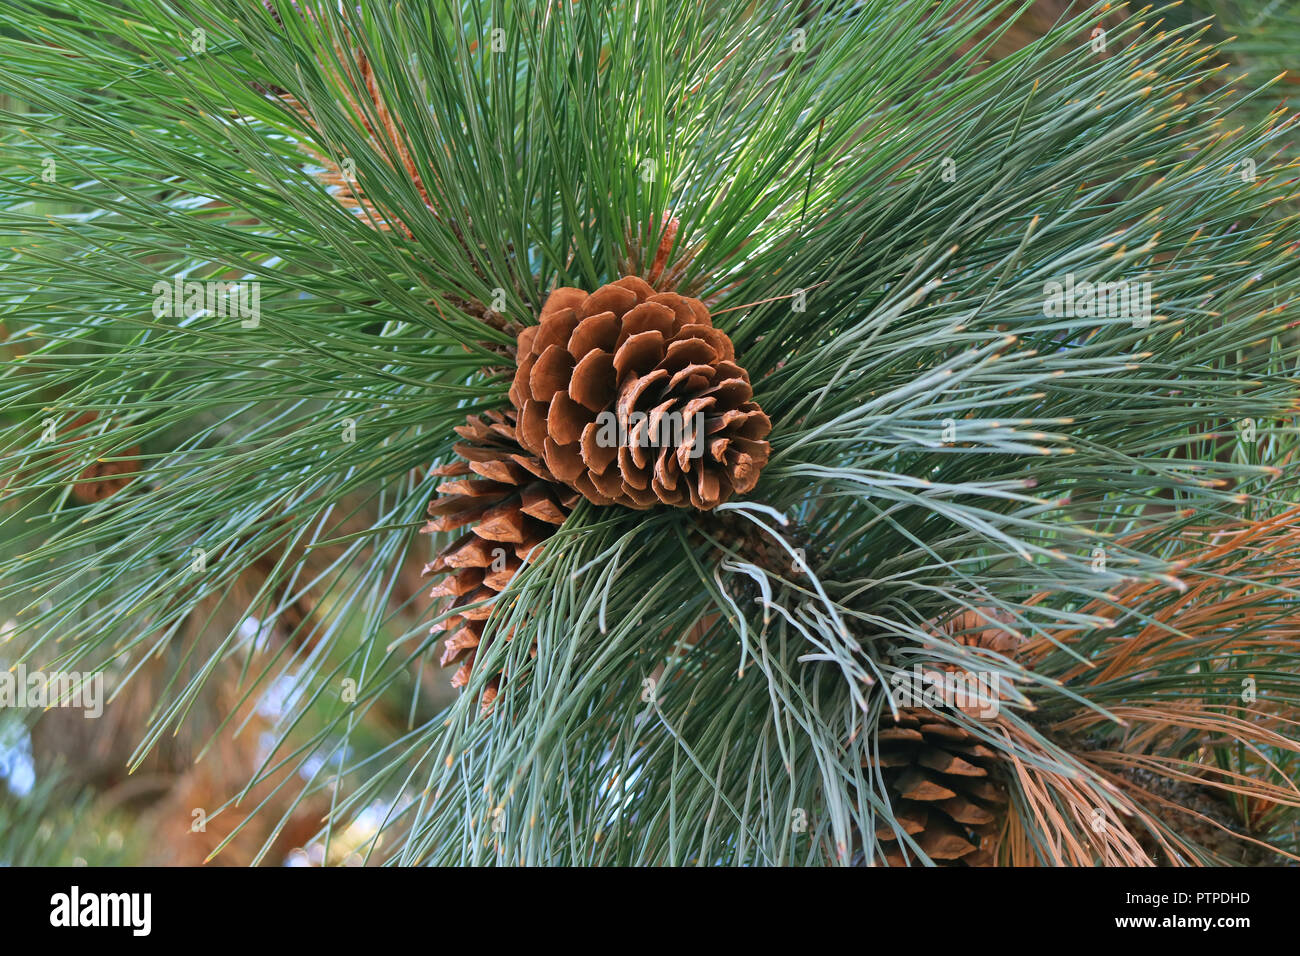 Closed up a pair of pine cone hanging on Pine tree, El Calafate, Patagonia, Argentina - Stock Image